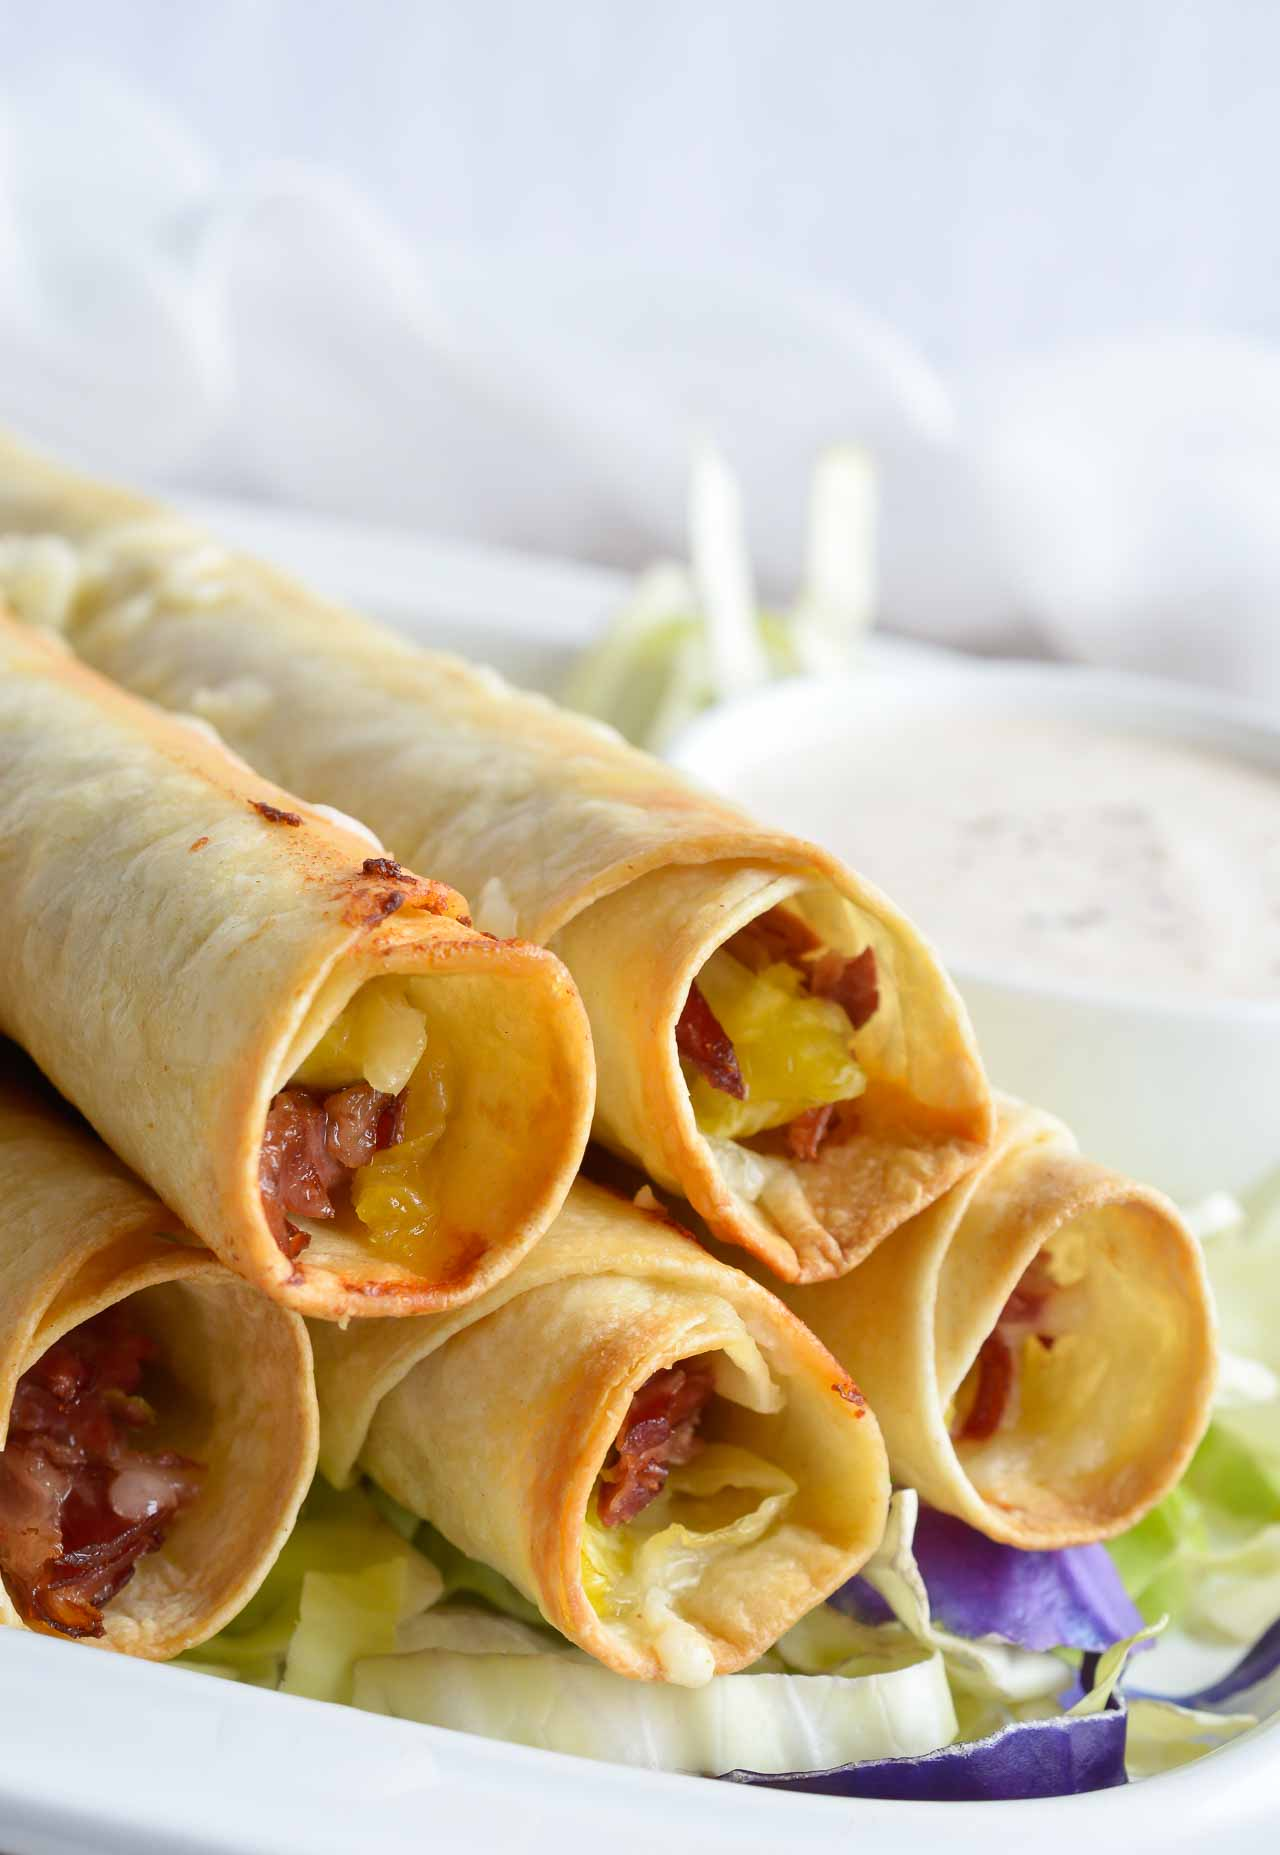 If you have leftover corned beef after Saint Patrick's Day, make this Reuben Stuffed Baked Taquitos Recipe! These homemade taquitos are filled with corned beef, sauerkraut and swiss cheese. Dip them in thousand island dressing for the ultimate meal or snack!